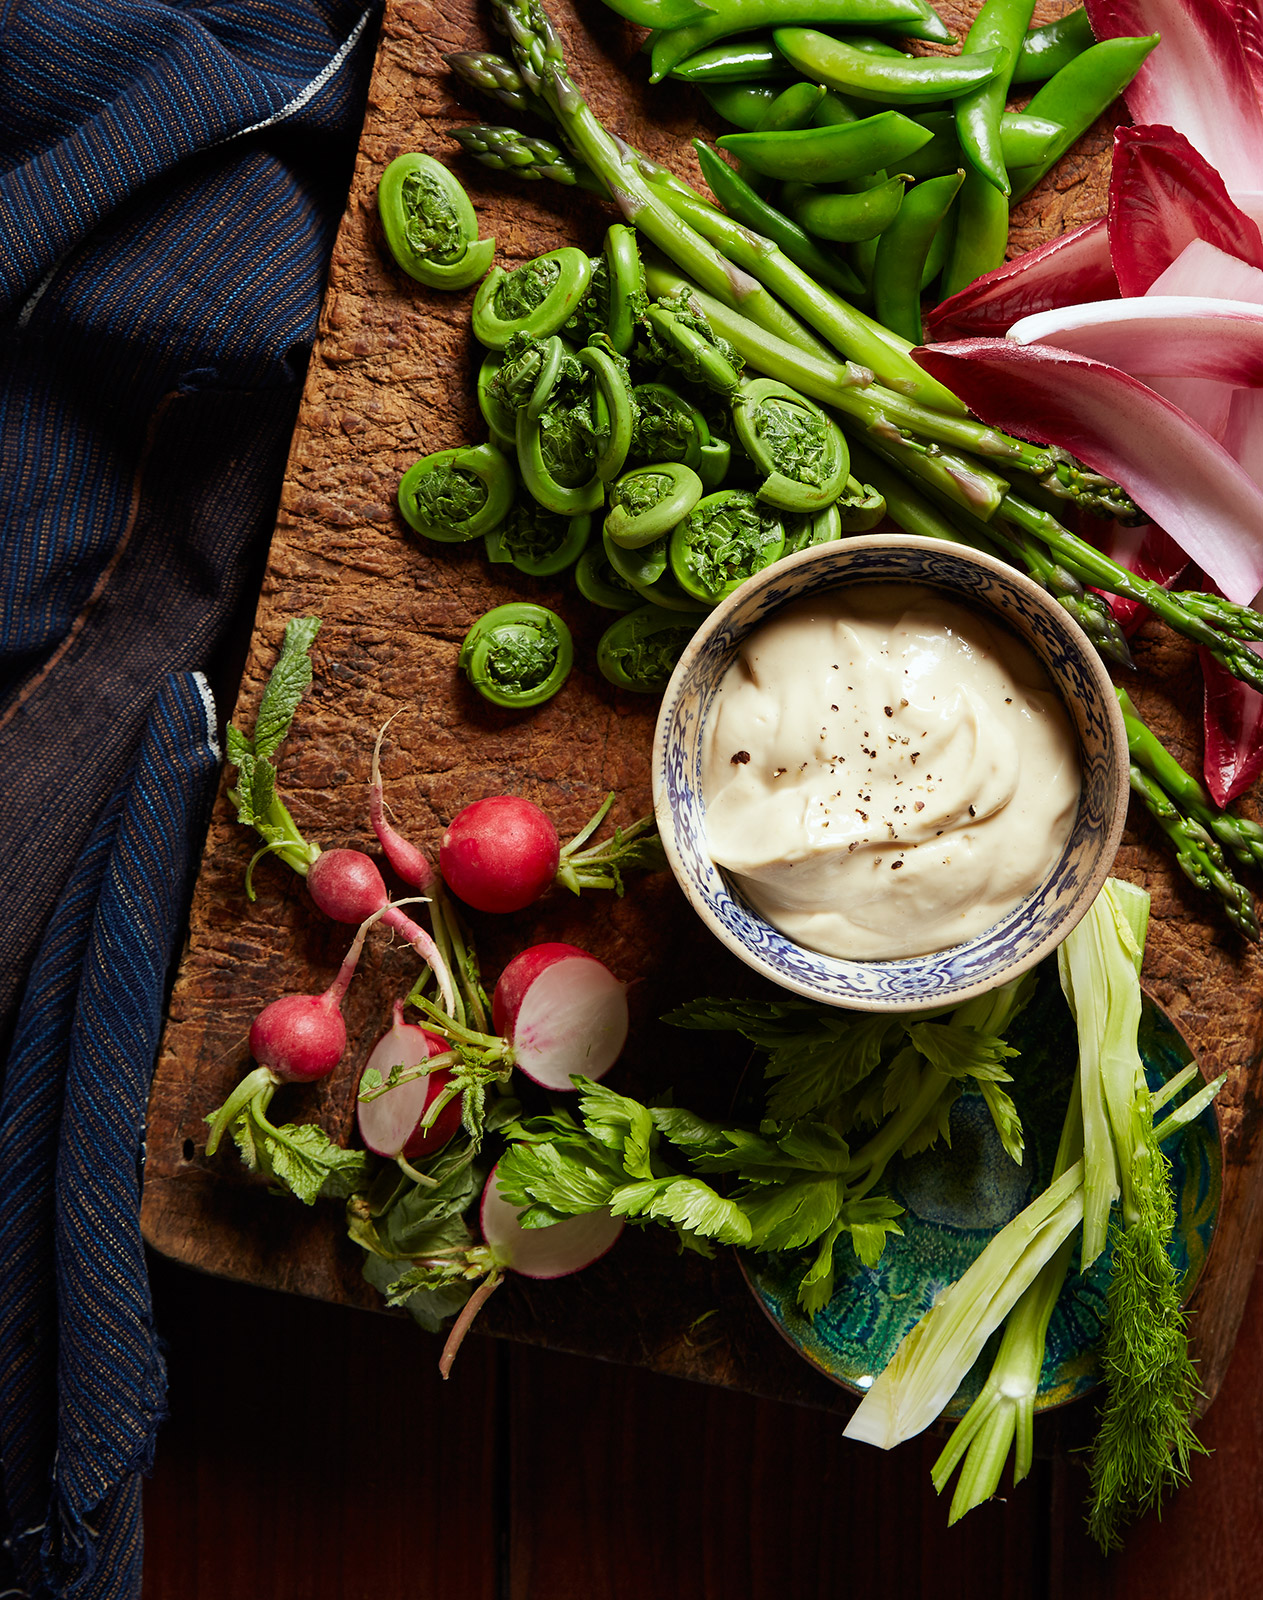 Miso Mayo Dip with Crudité Spring Vegetables